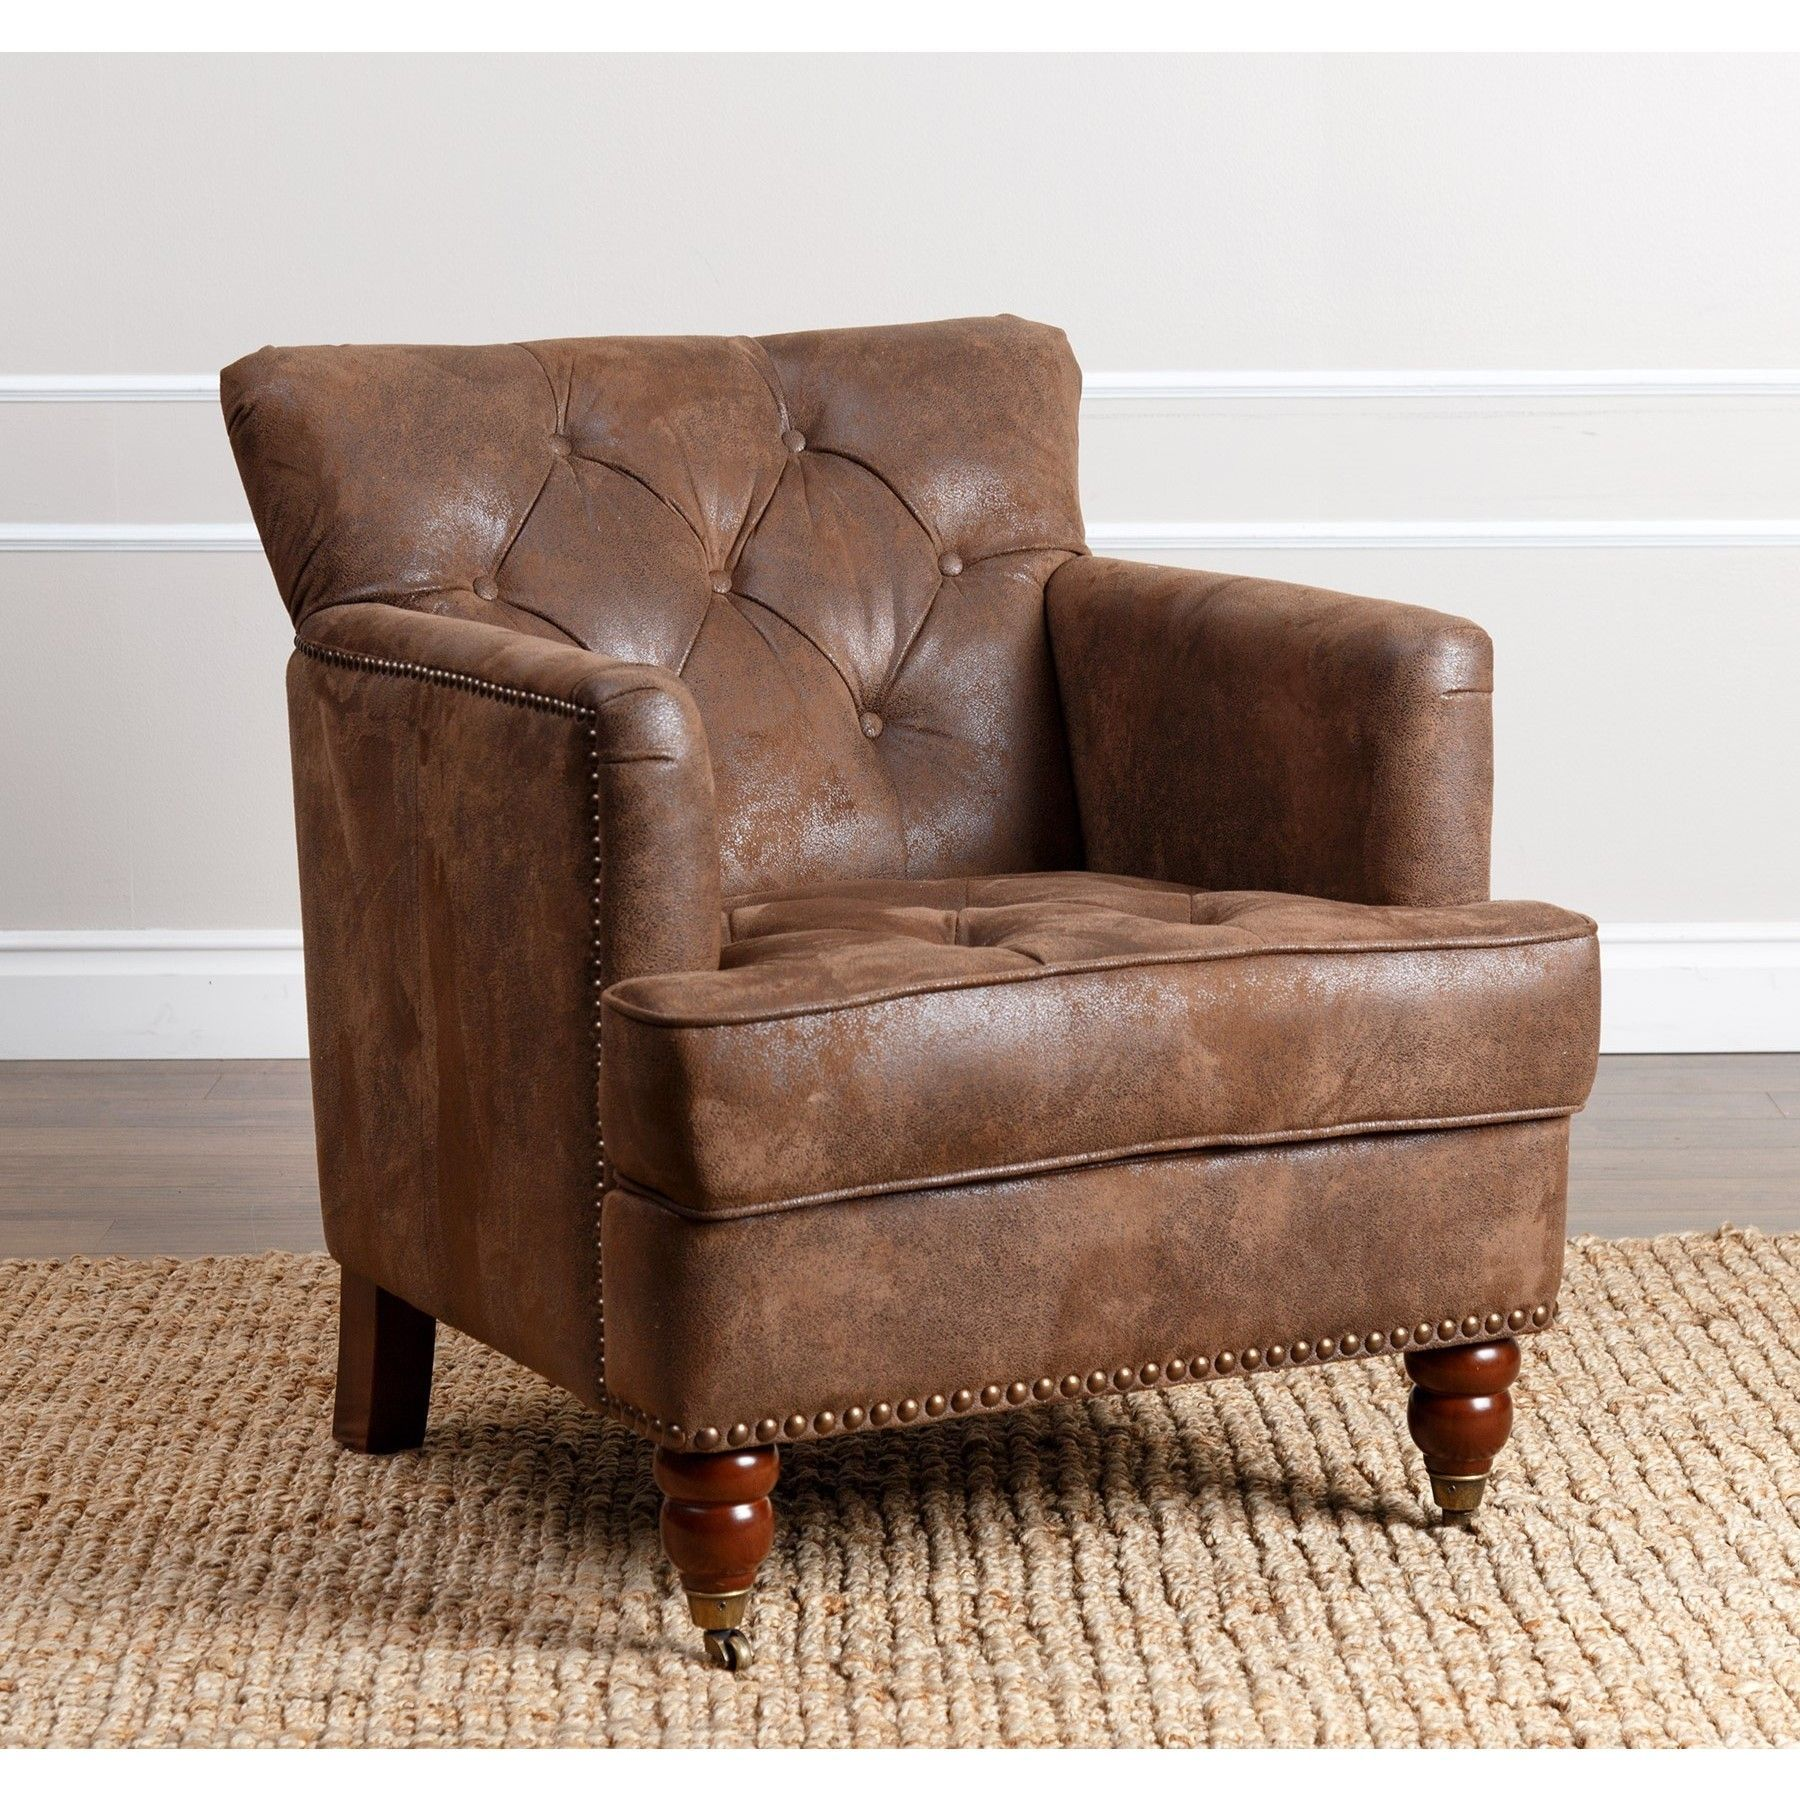 Add style to your home with the antique brown Tafton chair This